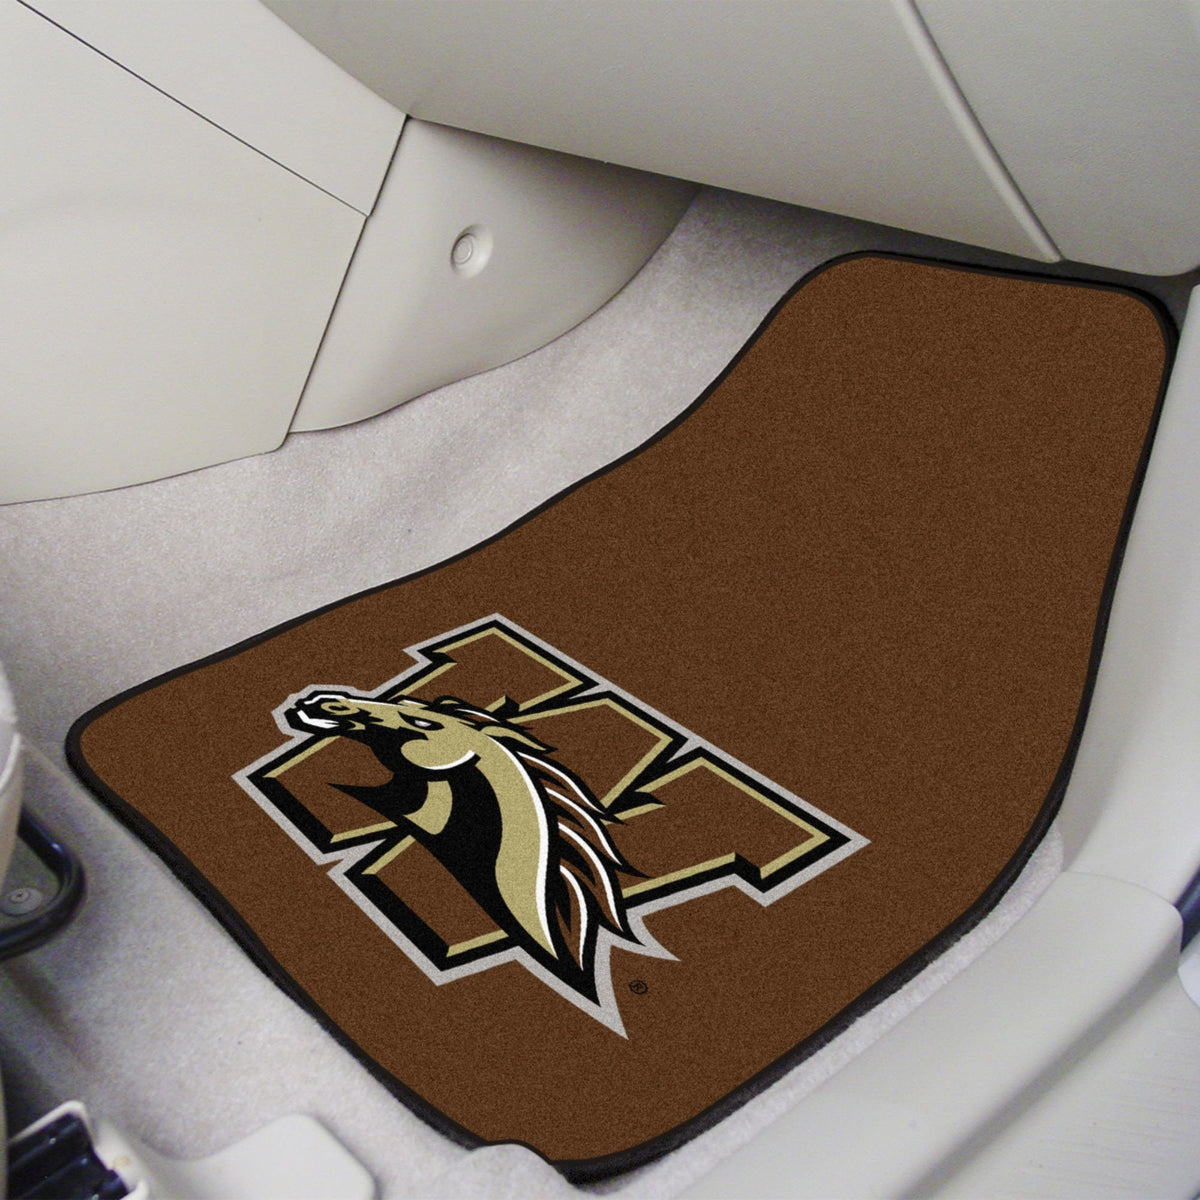 Collegiate - Carpet Car Mat, 2-Piece Set: T - Z Collegiate Car Mat, Front Car Mats, 2-pc Carpet Car Mat Set, Collegiate, Auto Fan Mats Western Michigan